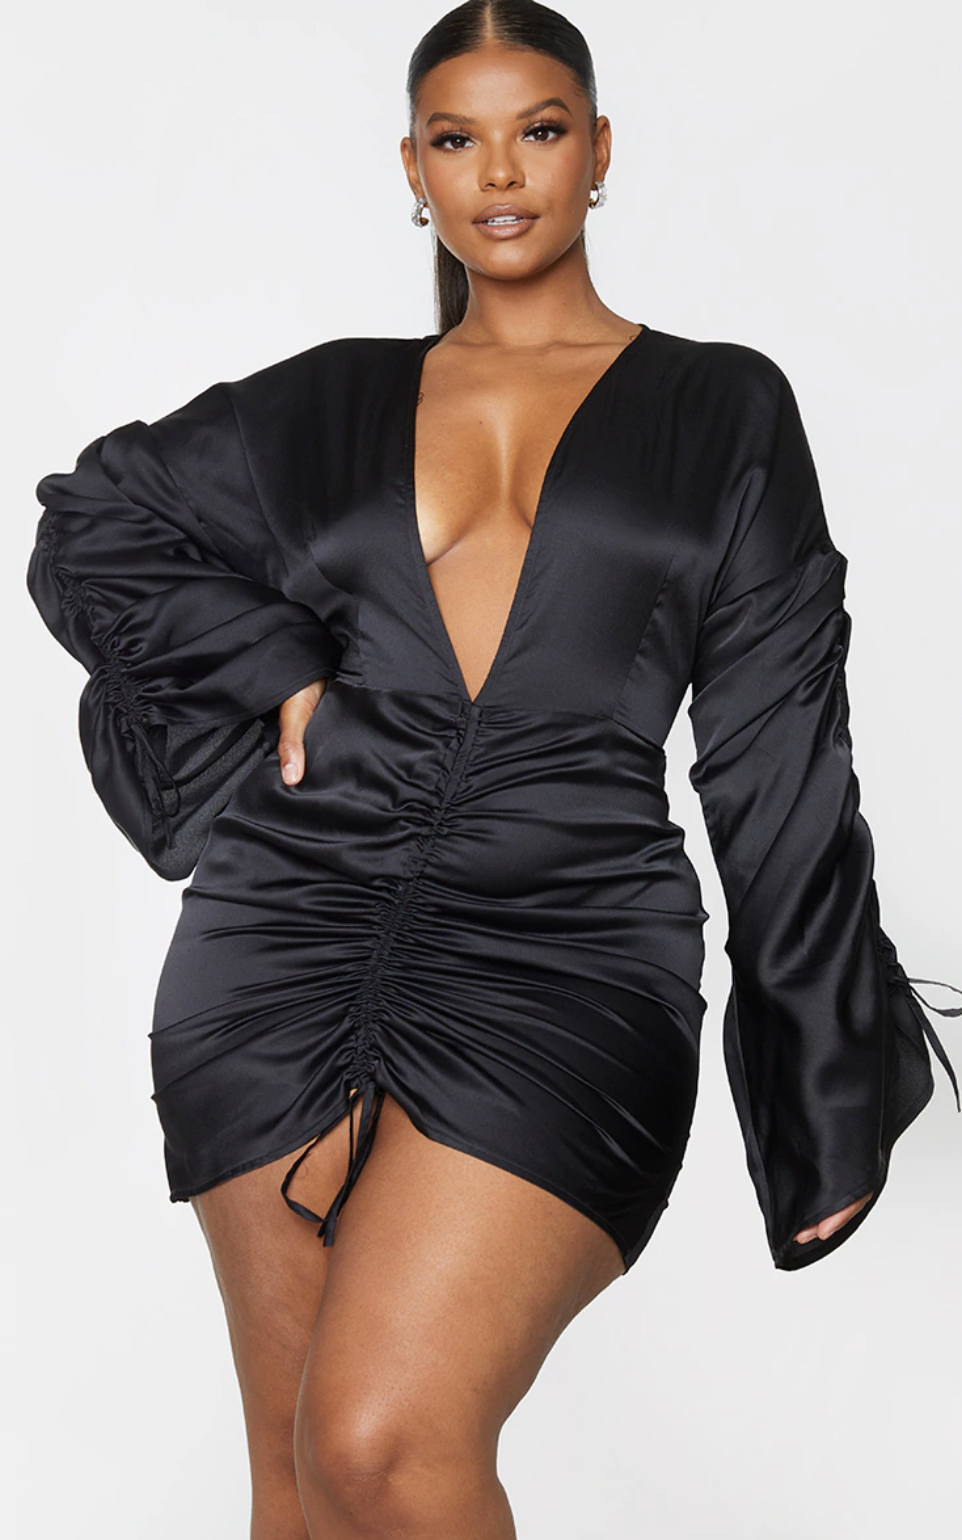 PrettyLittleThing Black Satin Plunged Ruched Front Dress